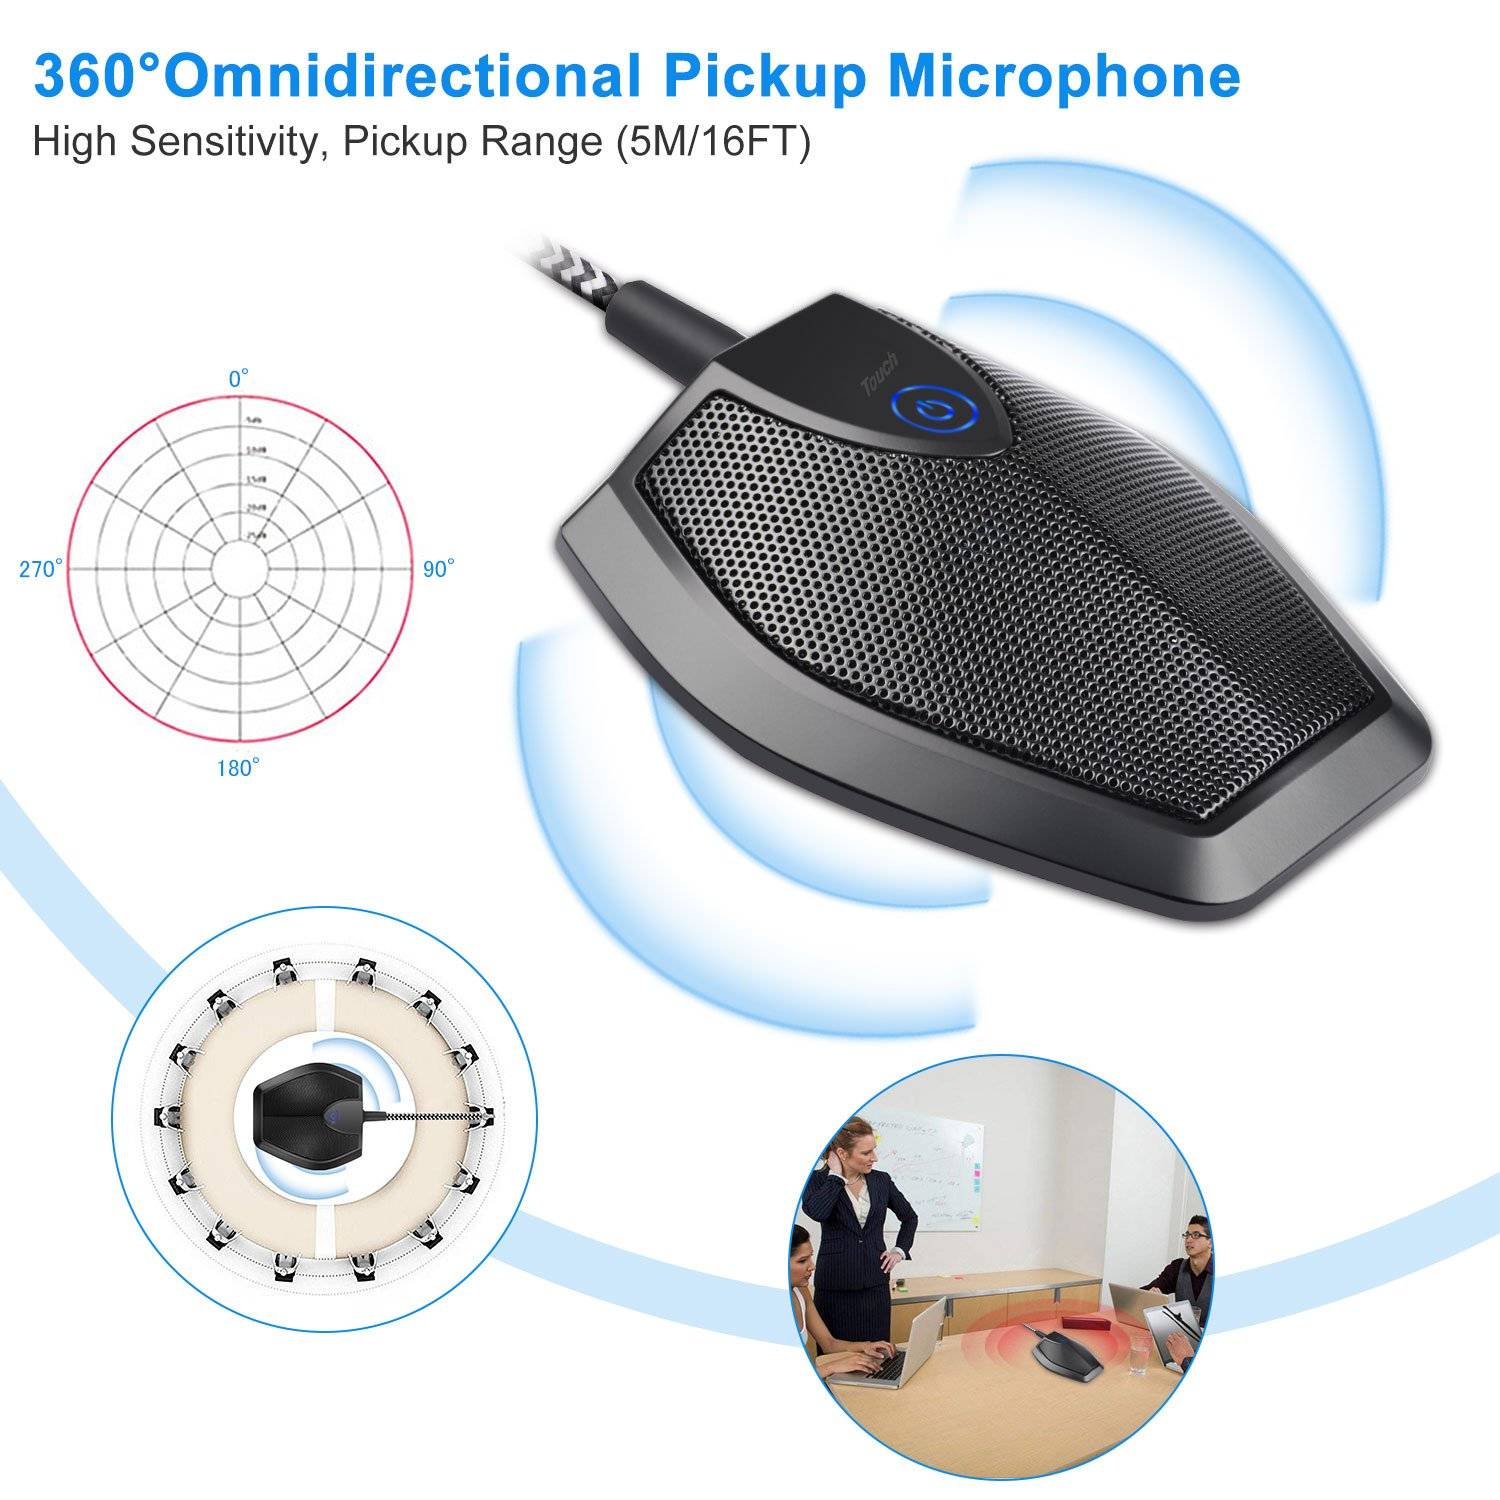 ELUTENG USB Condenser Microphone 360 ° Omnidirection Desktop Conference Microphone USB Computer Plug & Play with Mute Buttom Condenser PC Mic Compatible for Computer MacBook AIR/iMac / iMac Pro by ELUTENG (Image #2)